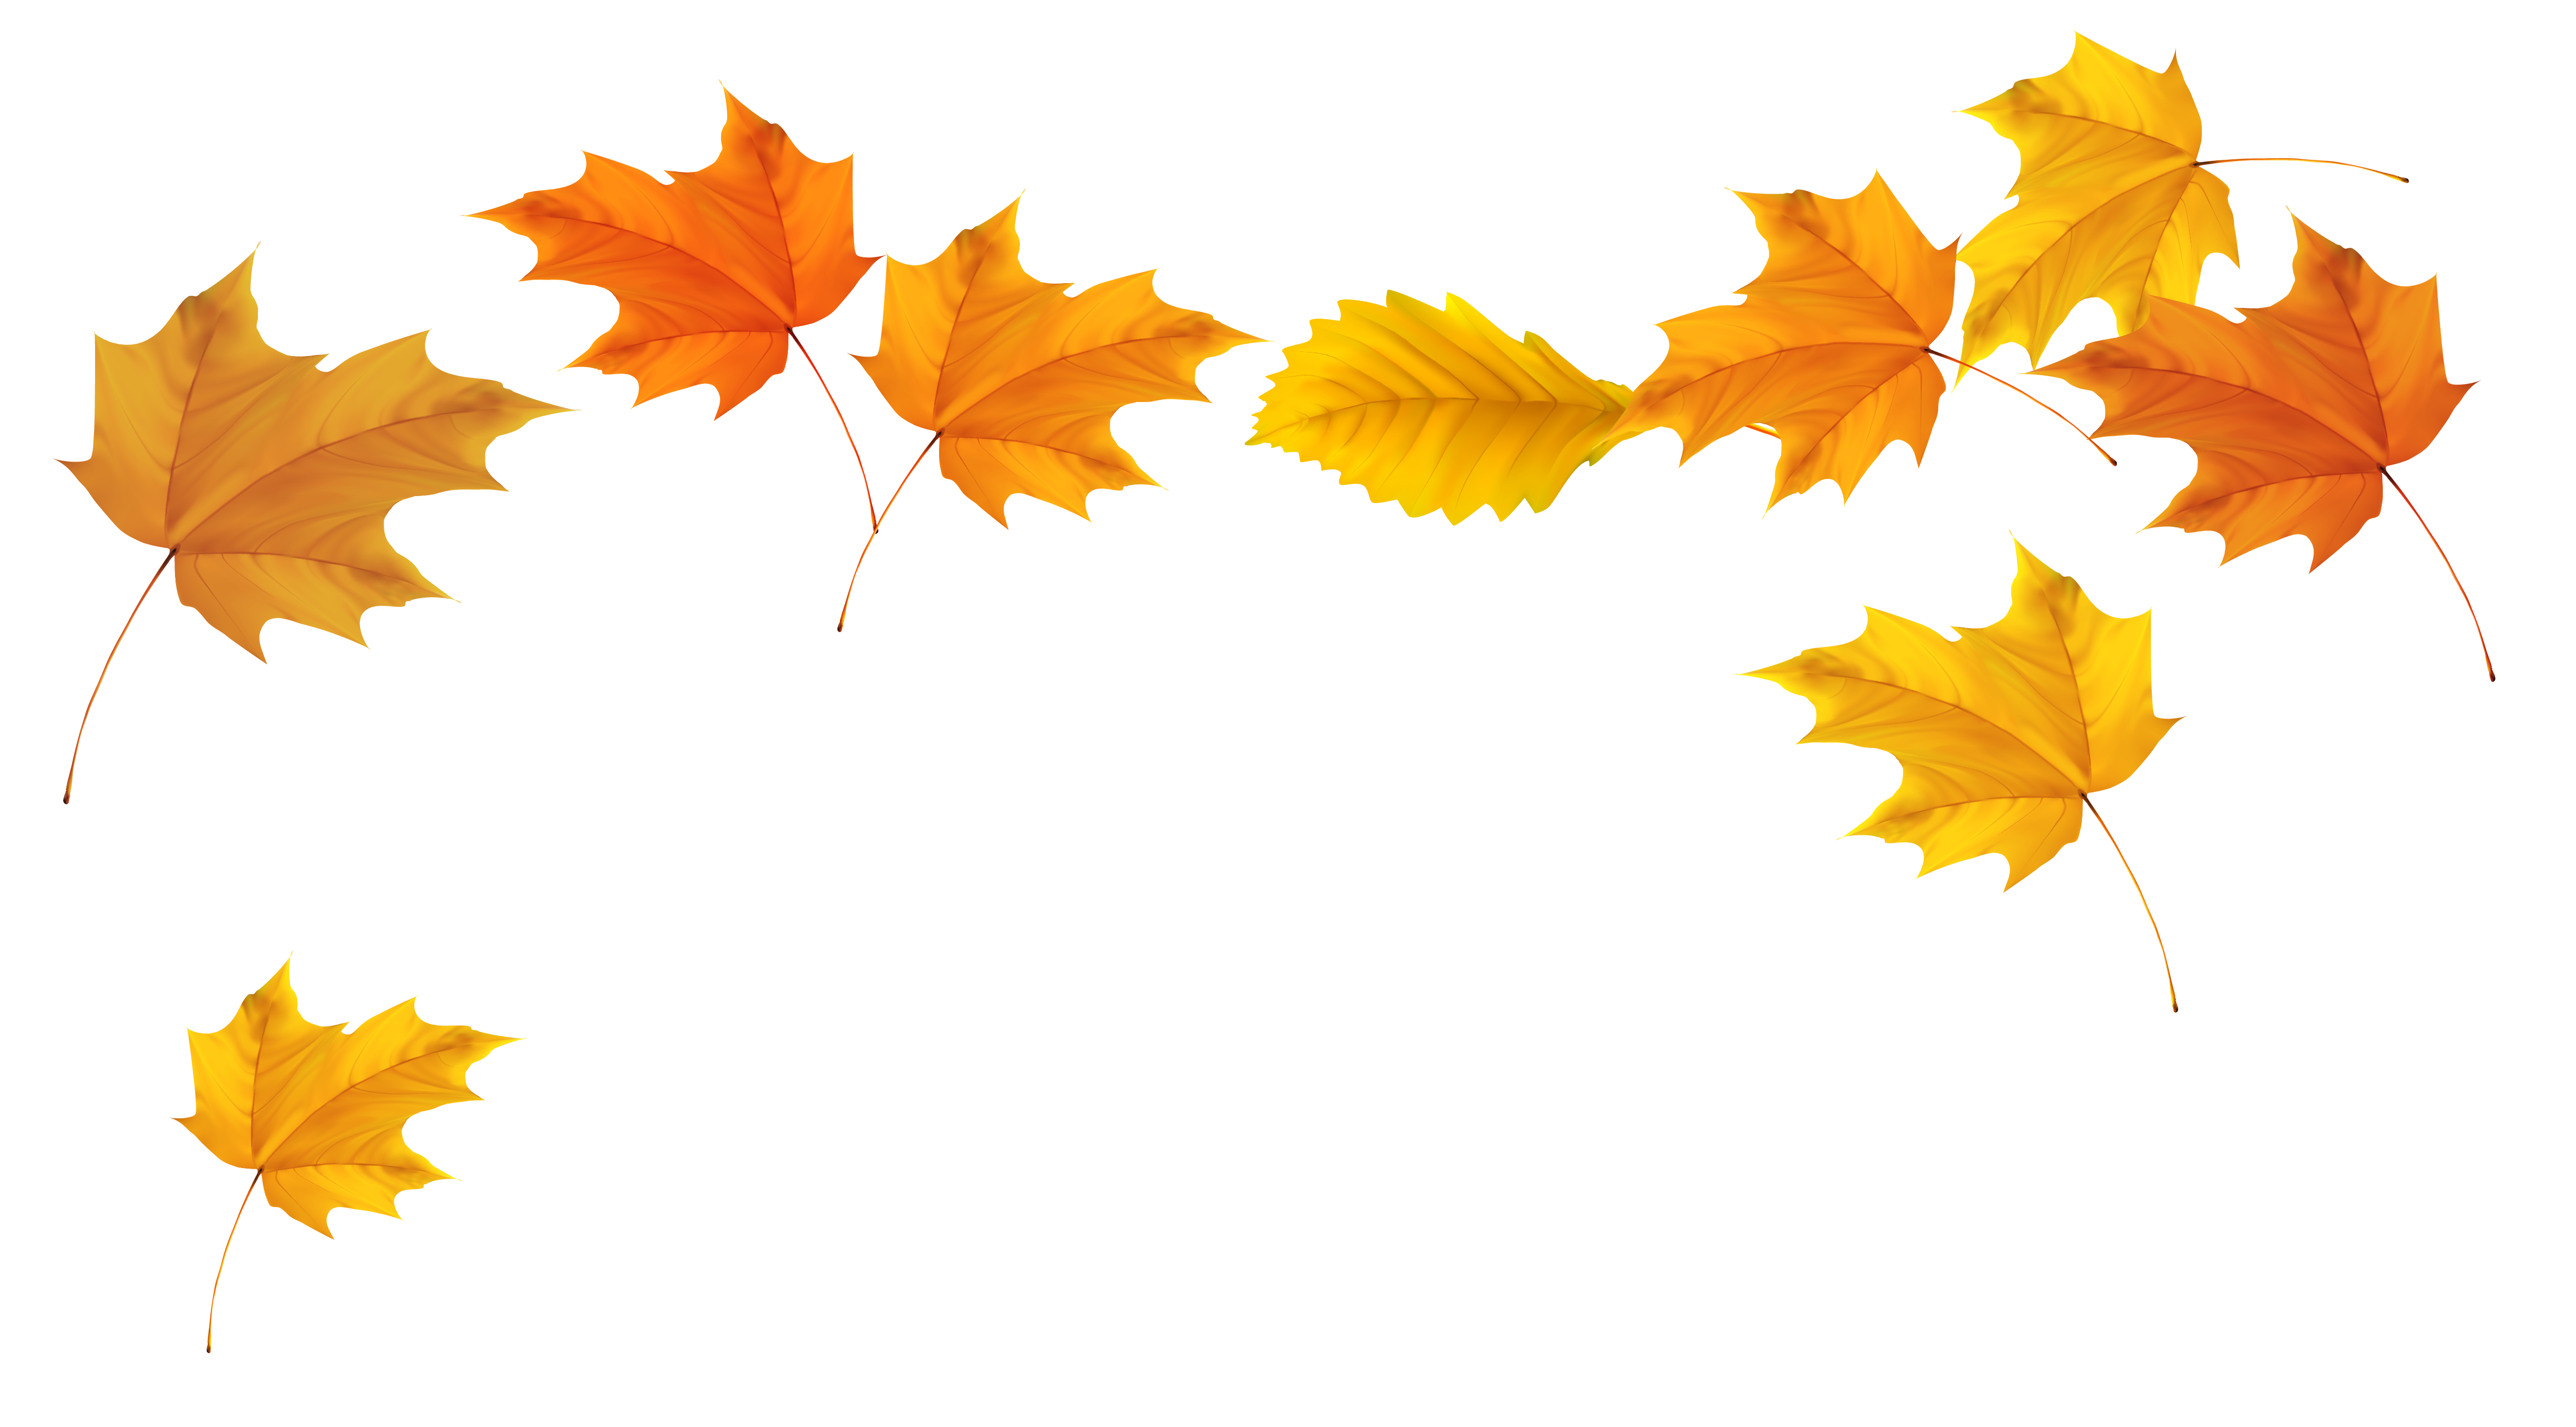 Fall clip art download. Free clipart autumn leaves